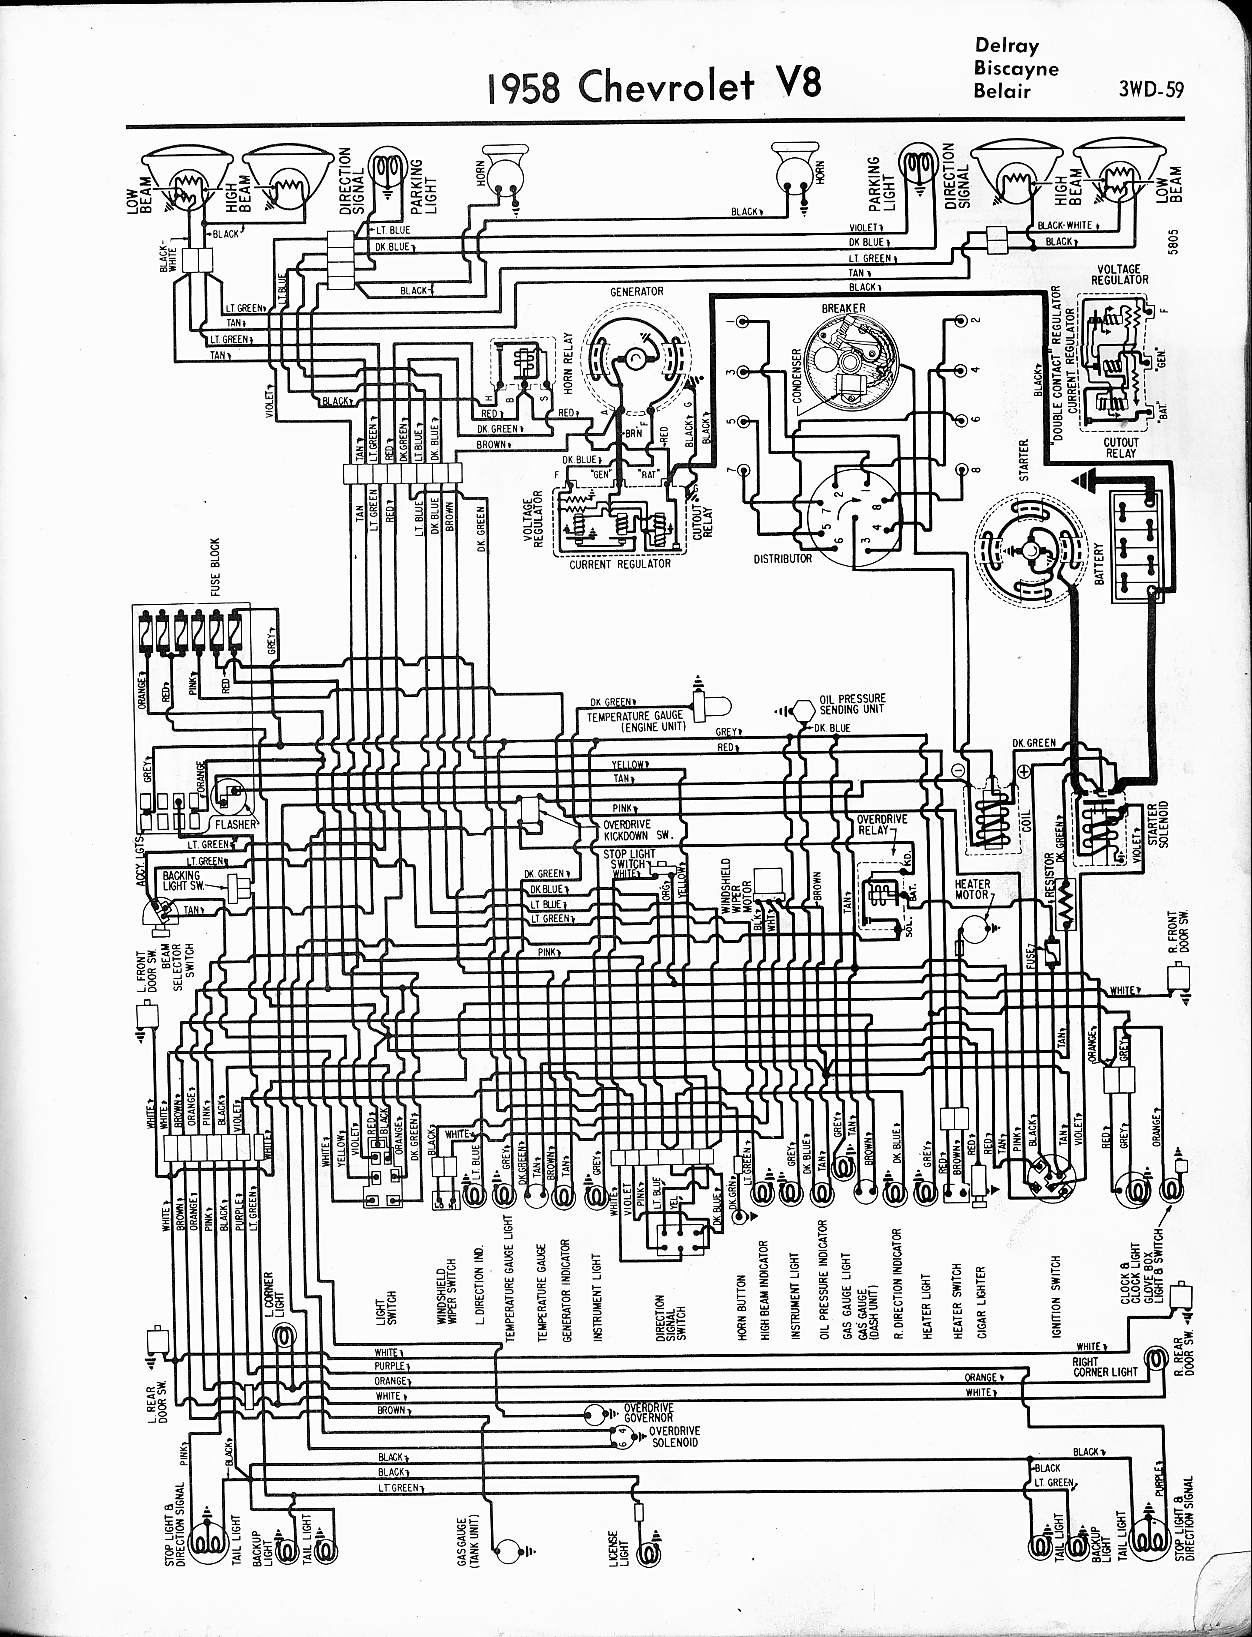 hight resolution of 1958 impala wiring diagram electrical wiring diagram57 65 chevy wiring diagrams1958 v8 delray biscayne